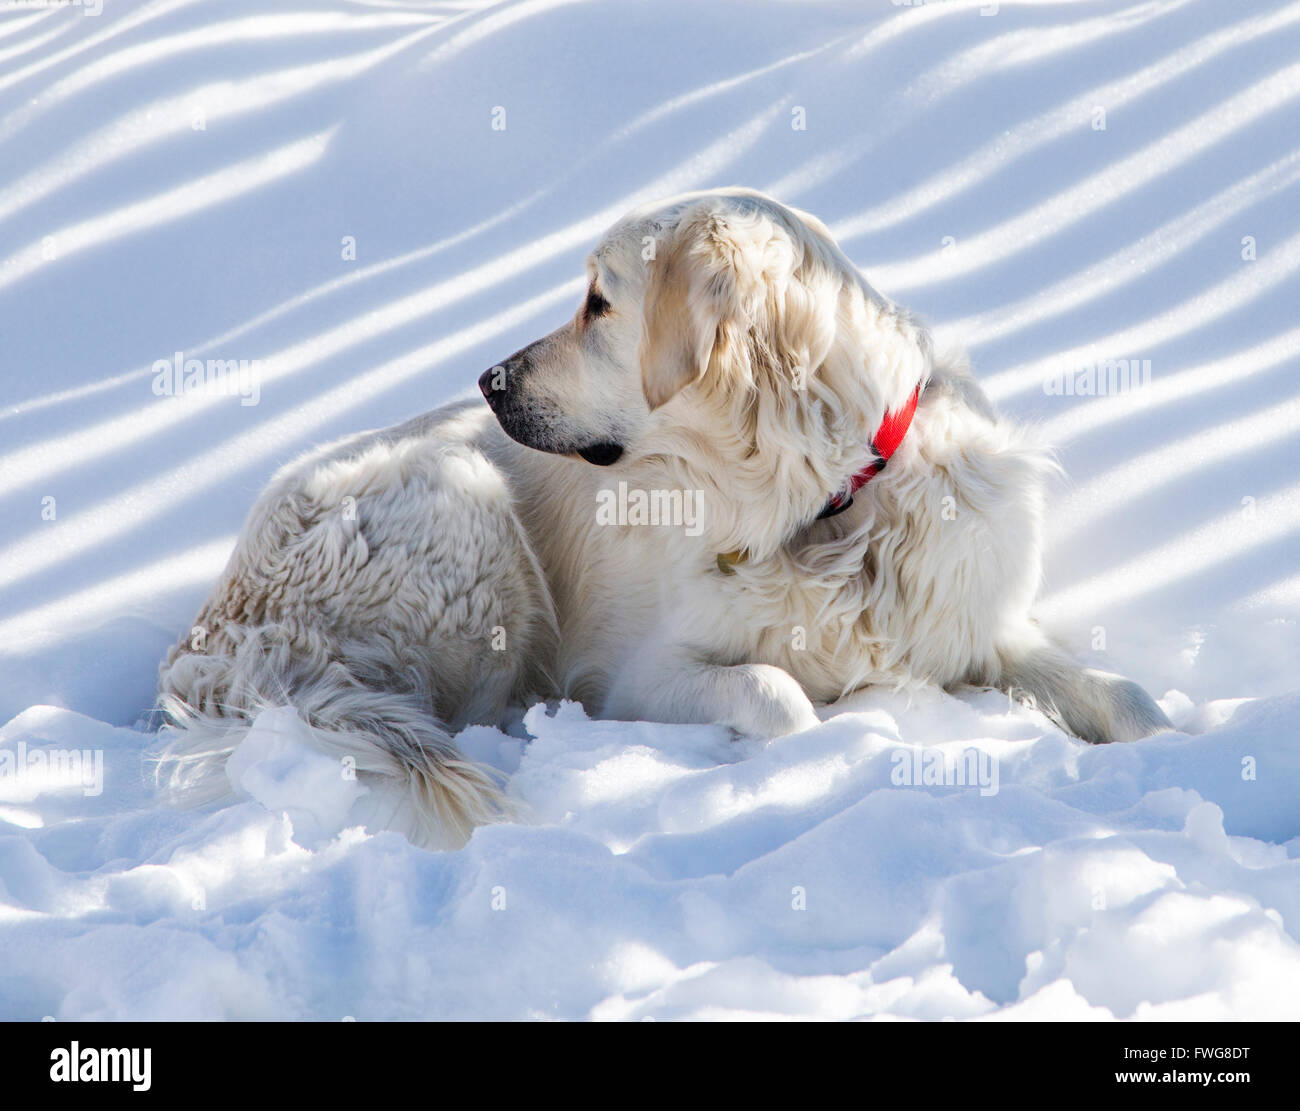 Platinum colored Golden Retriever dog in snow. - Stock Image